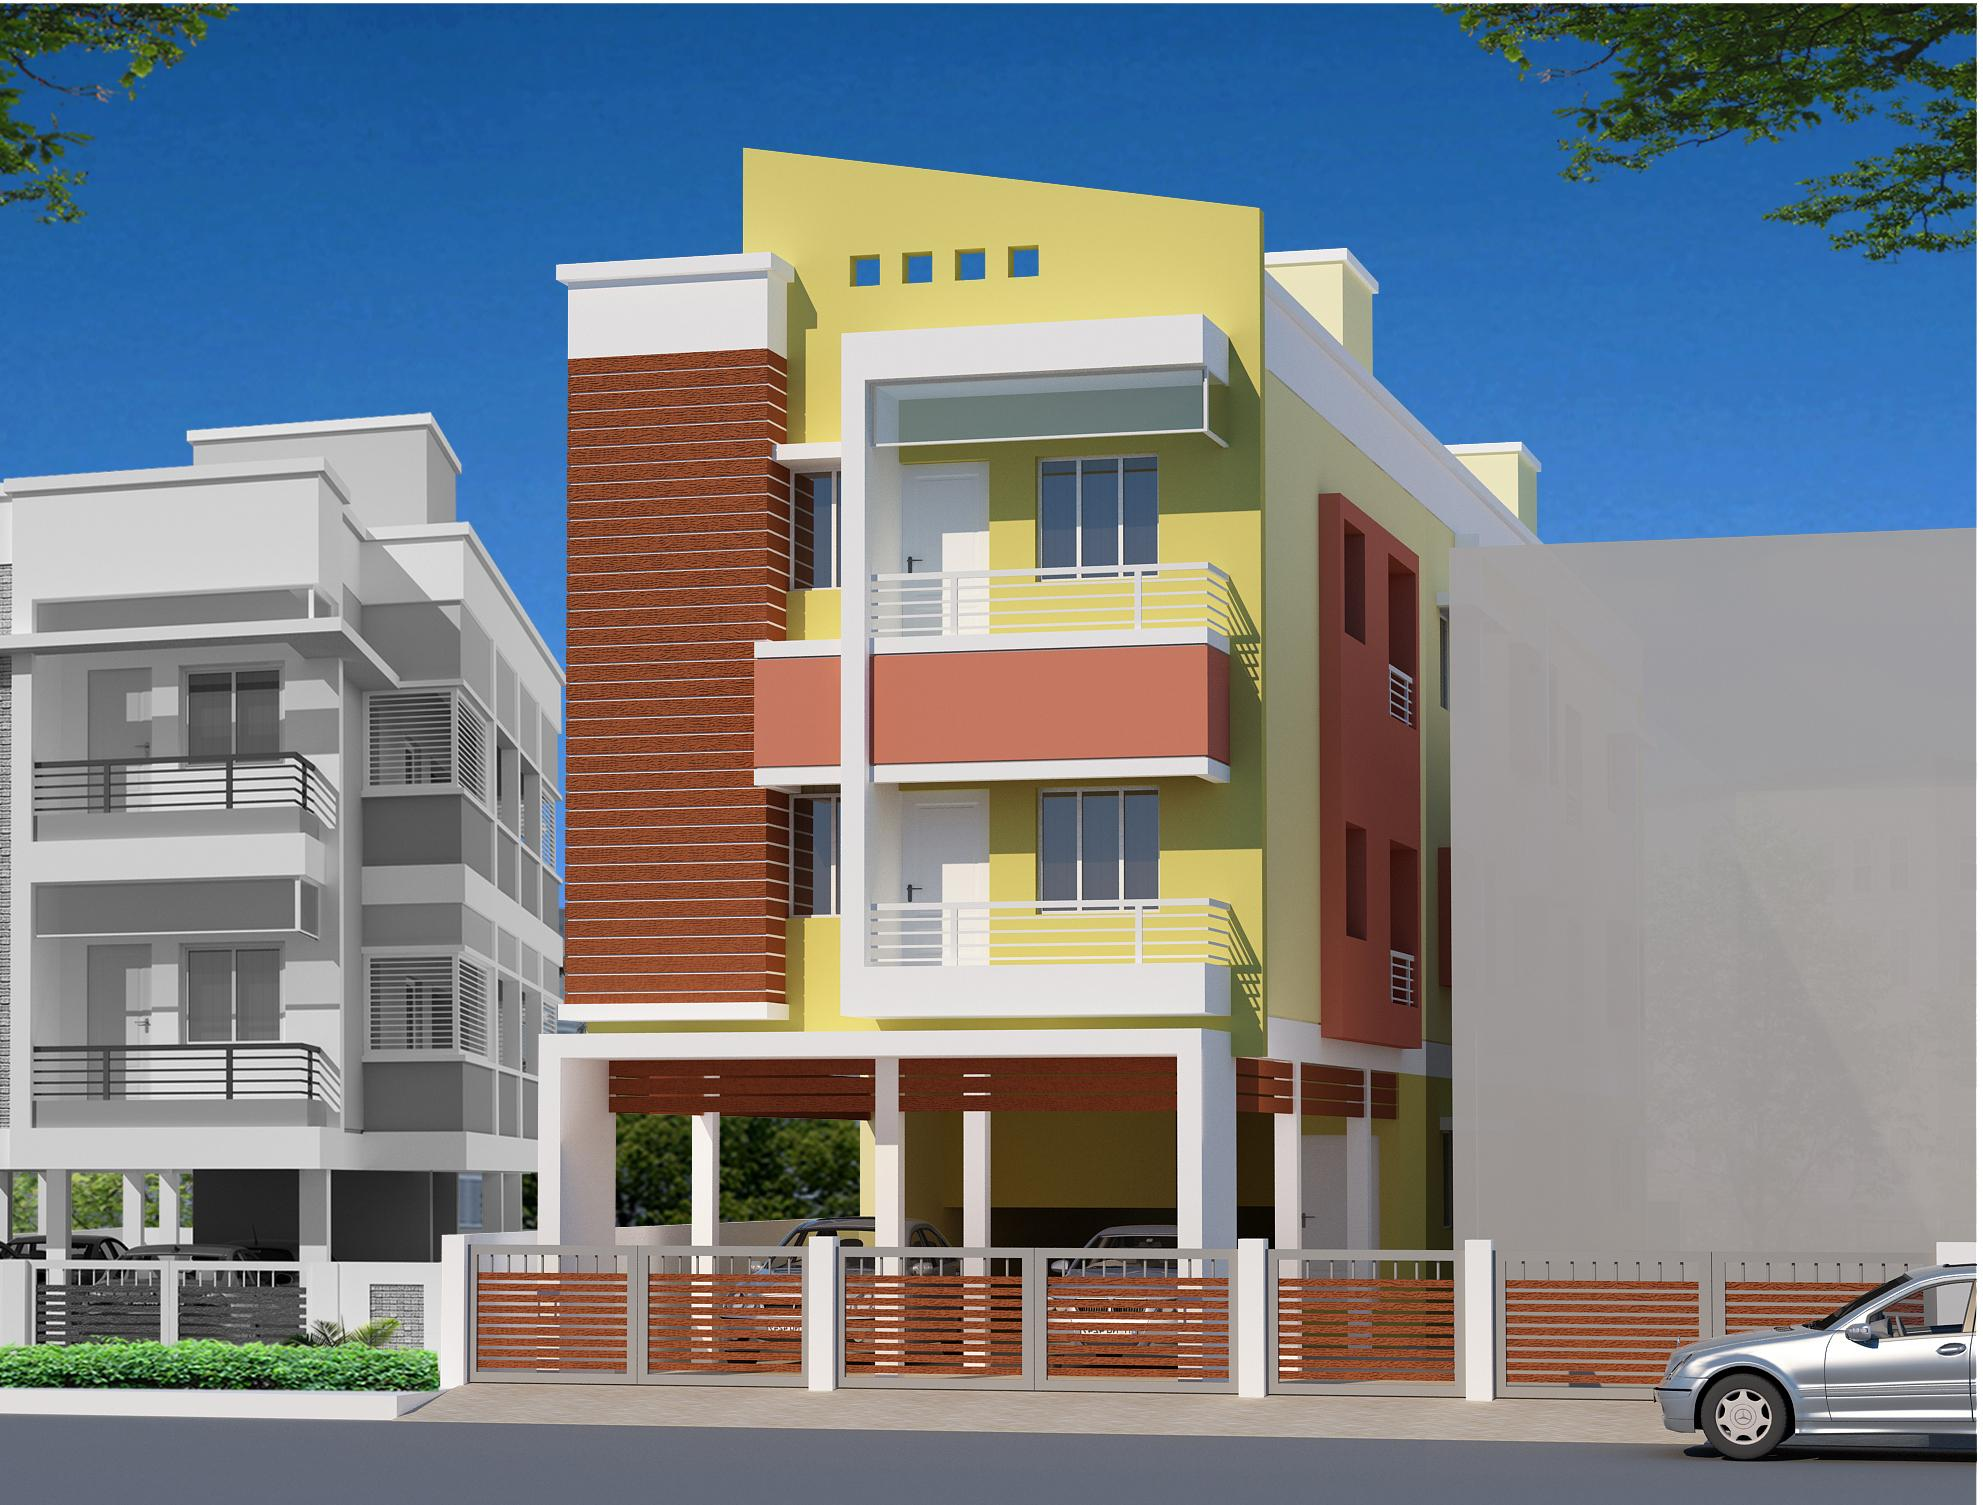 Residential multi storey building elevation design with small front ...